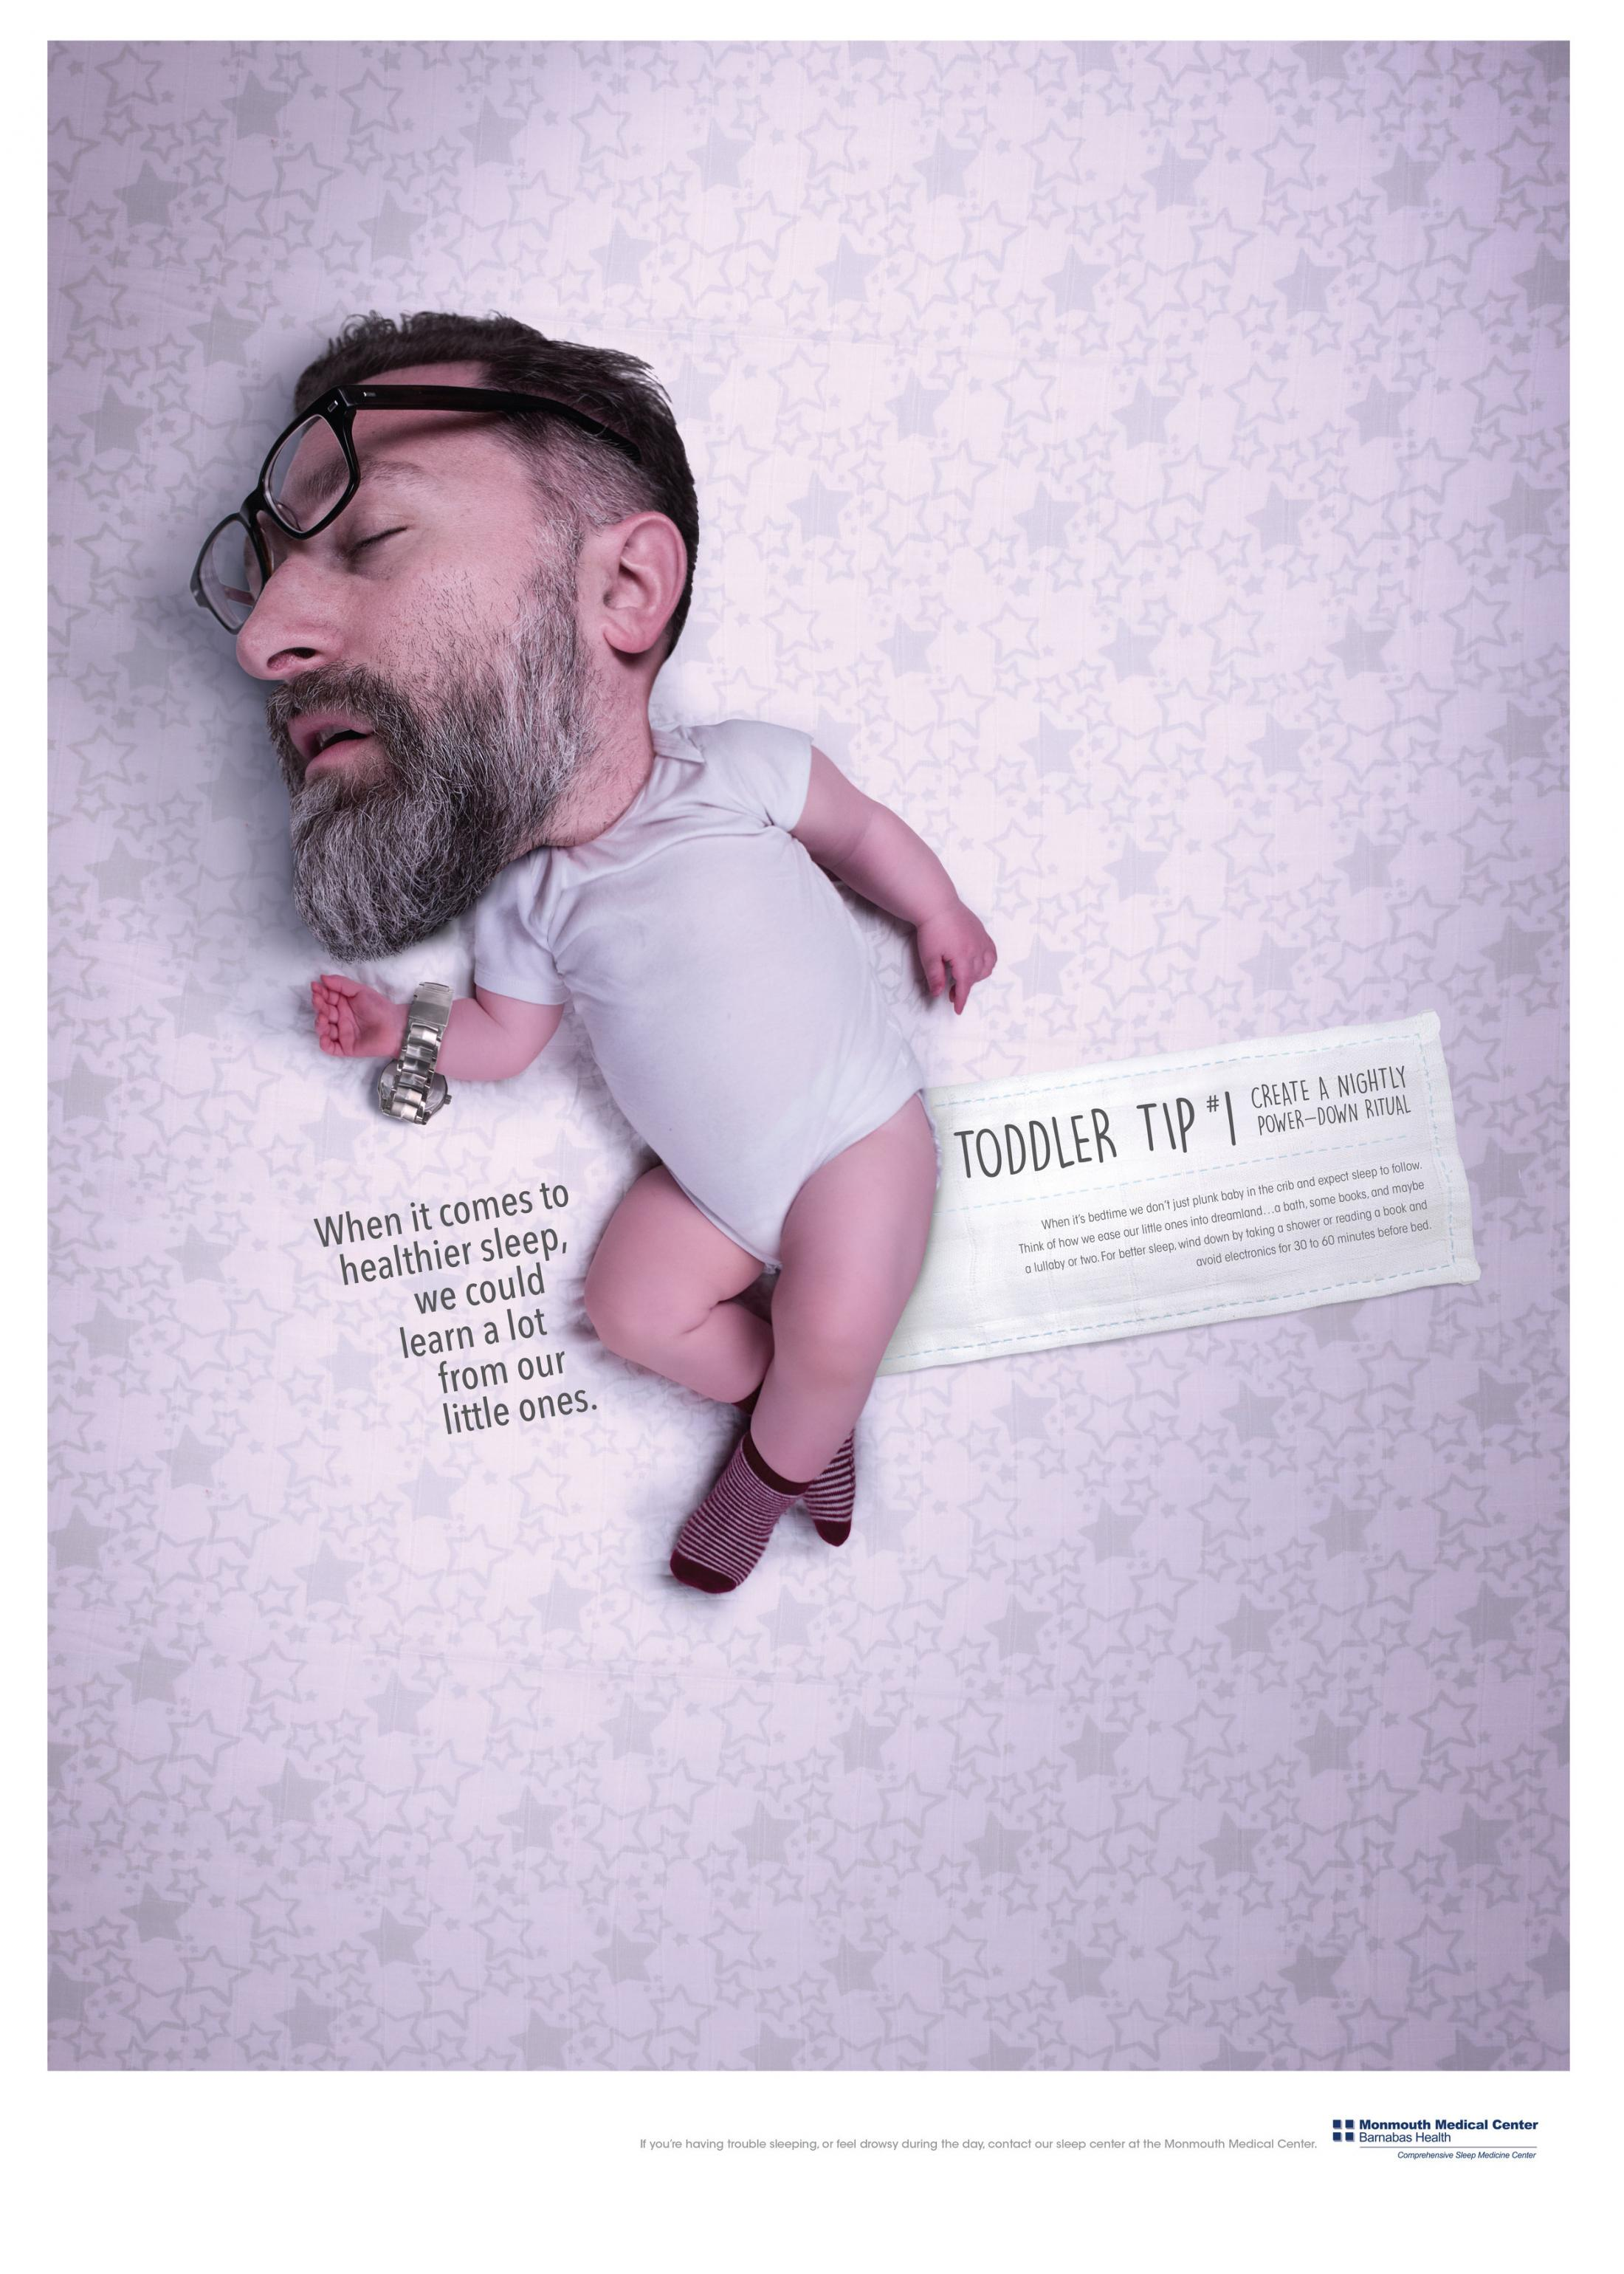 Monmouth Medical Center Print Ad - Toddler Tips Sleep Campaign, 1